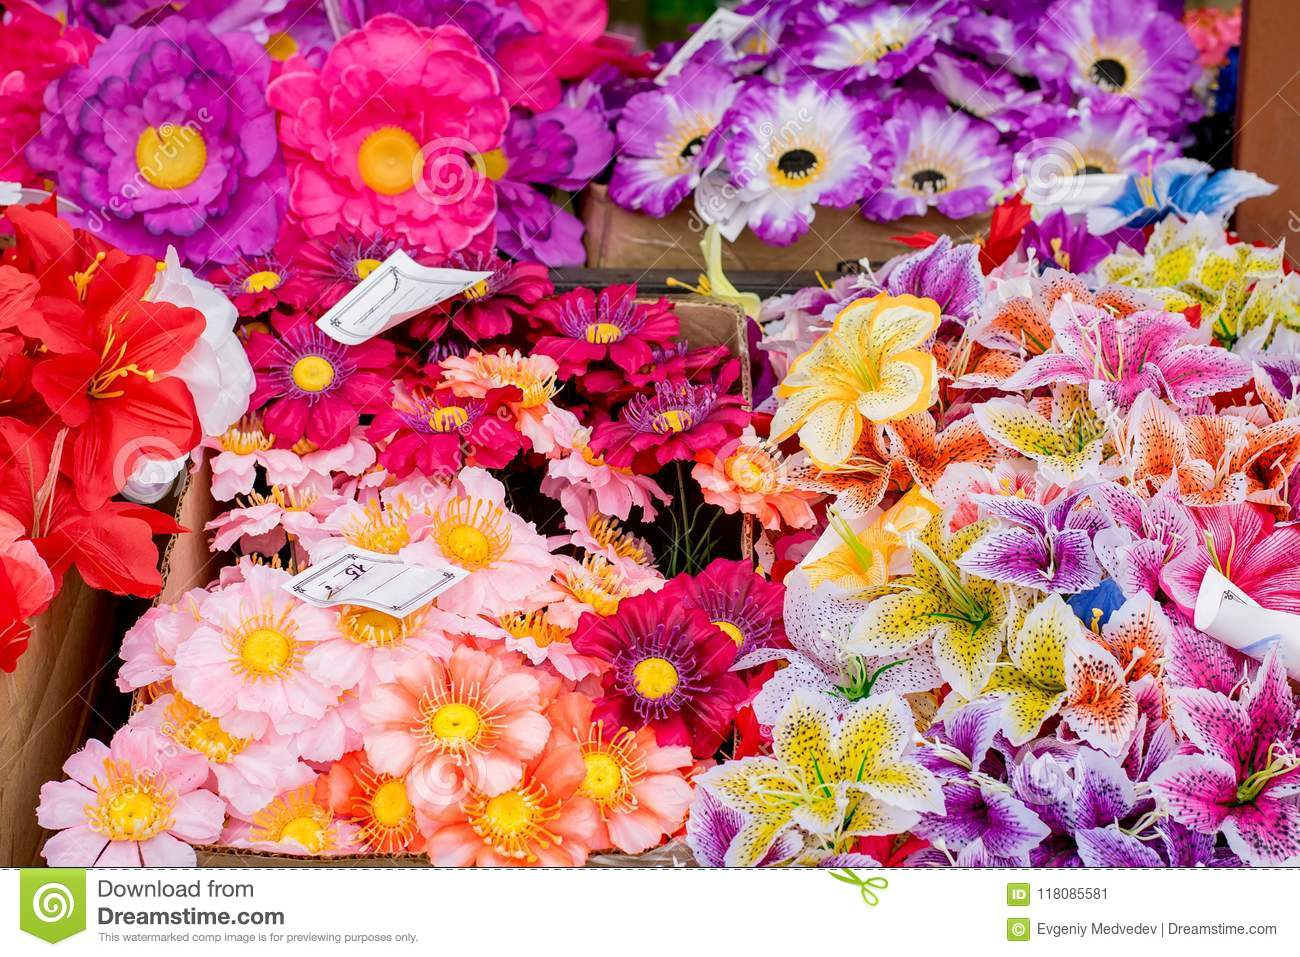 Sale of flower bouquets with price tags close up stock image image sale of flower bouquets with price tags close up izmirmasajfo